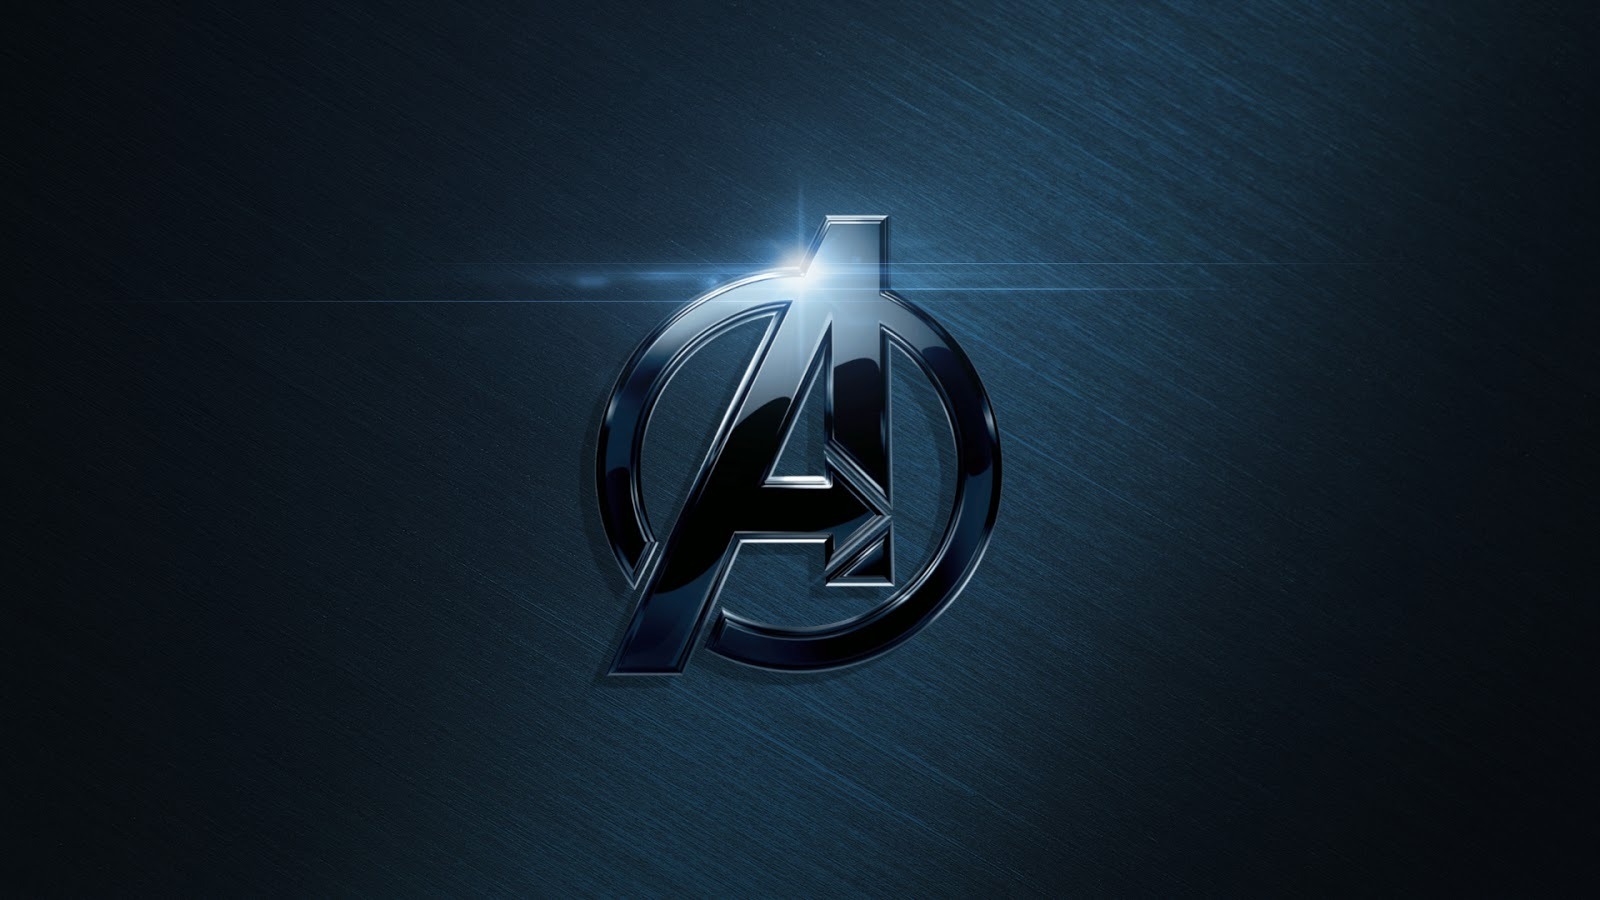 HD Logo Avengers Wallpaper